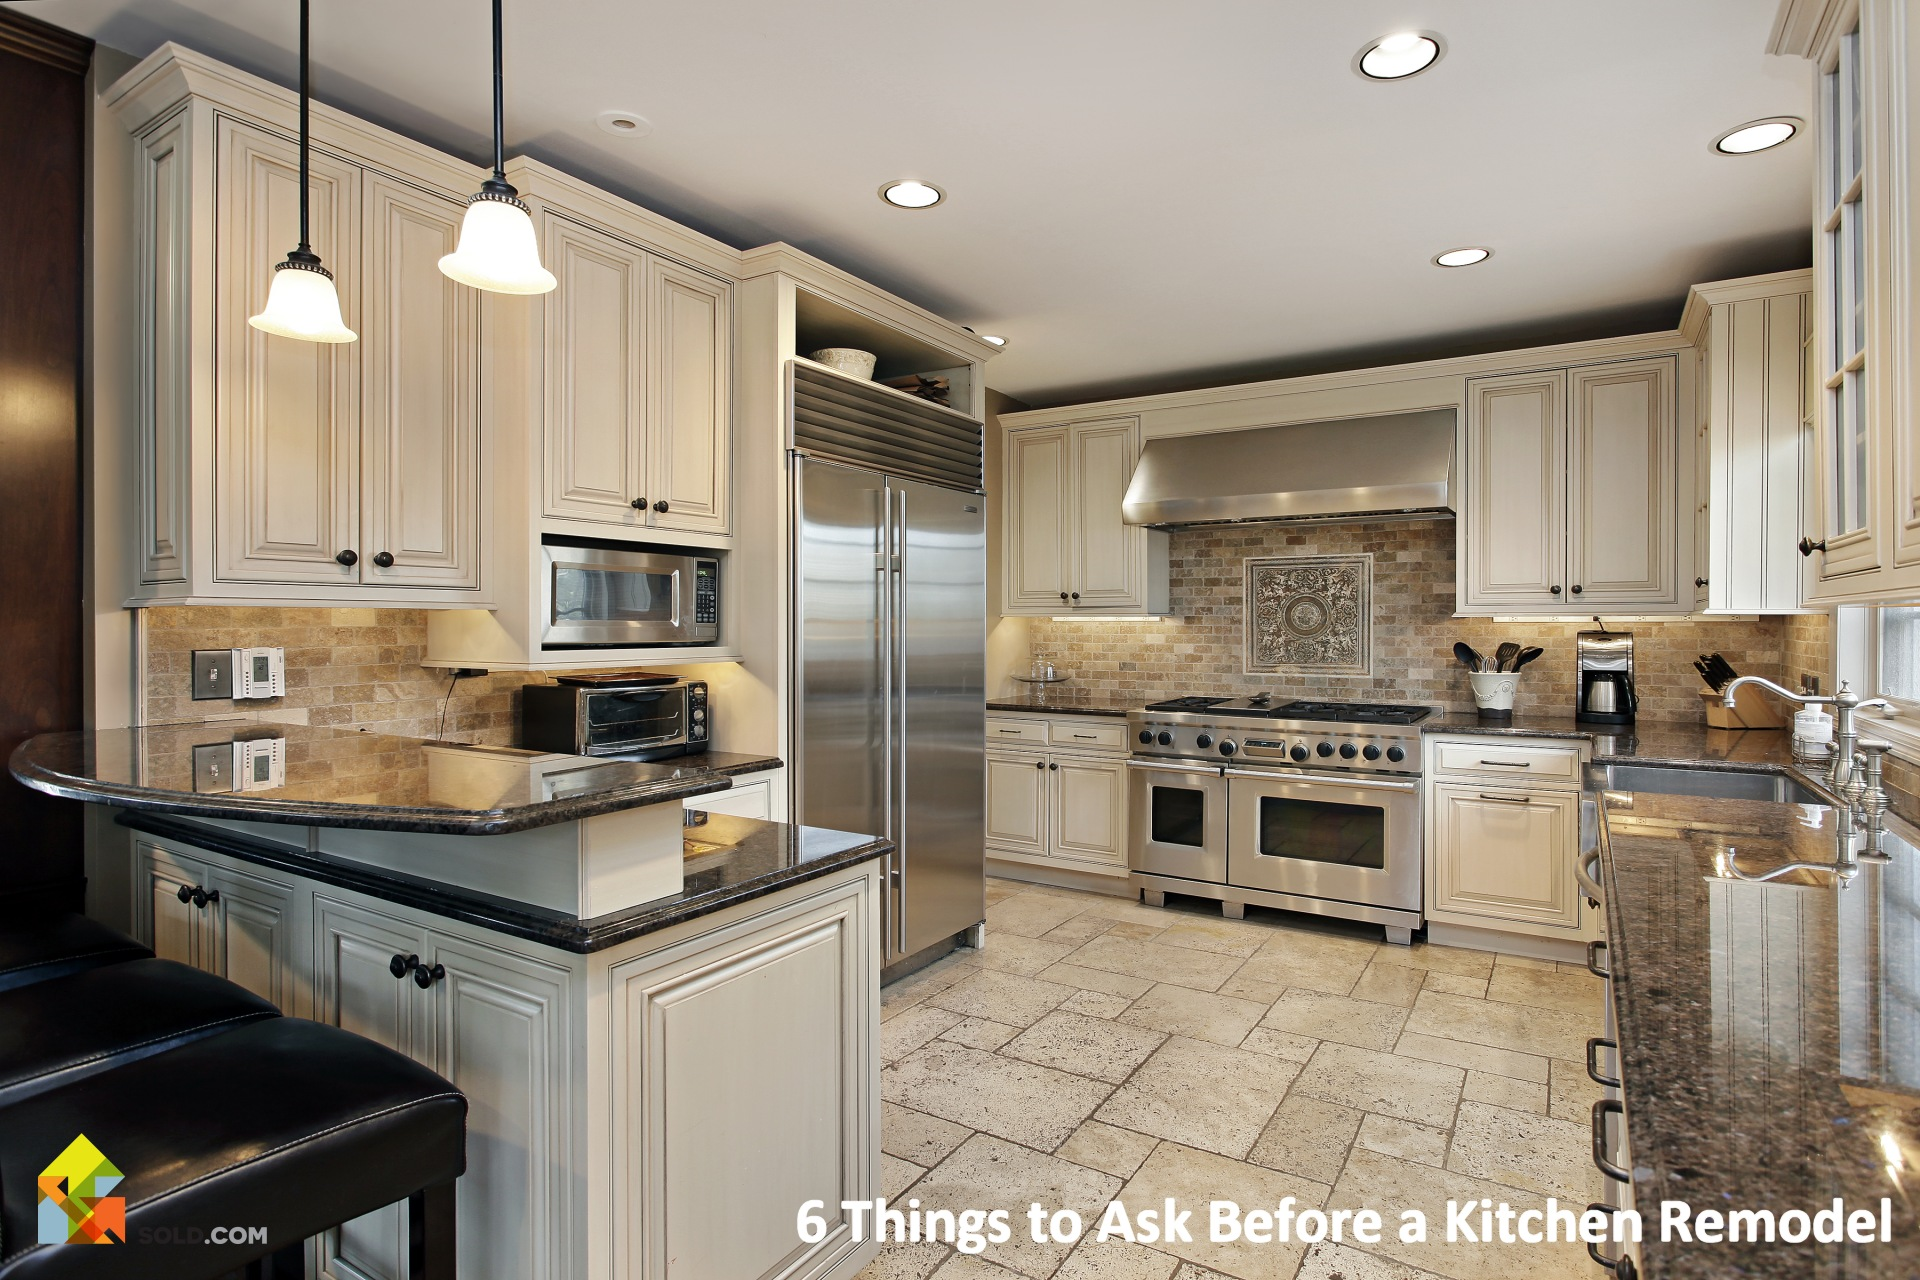 6 Things to Ask Before a Kitchen Remodel